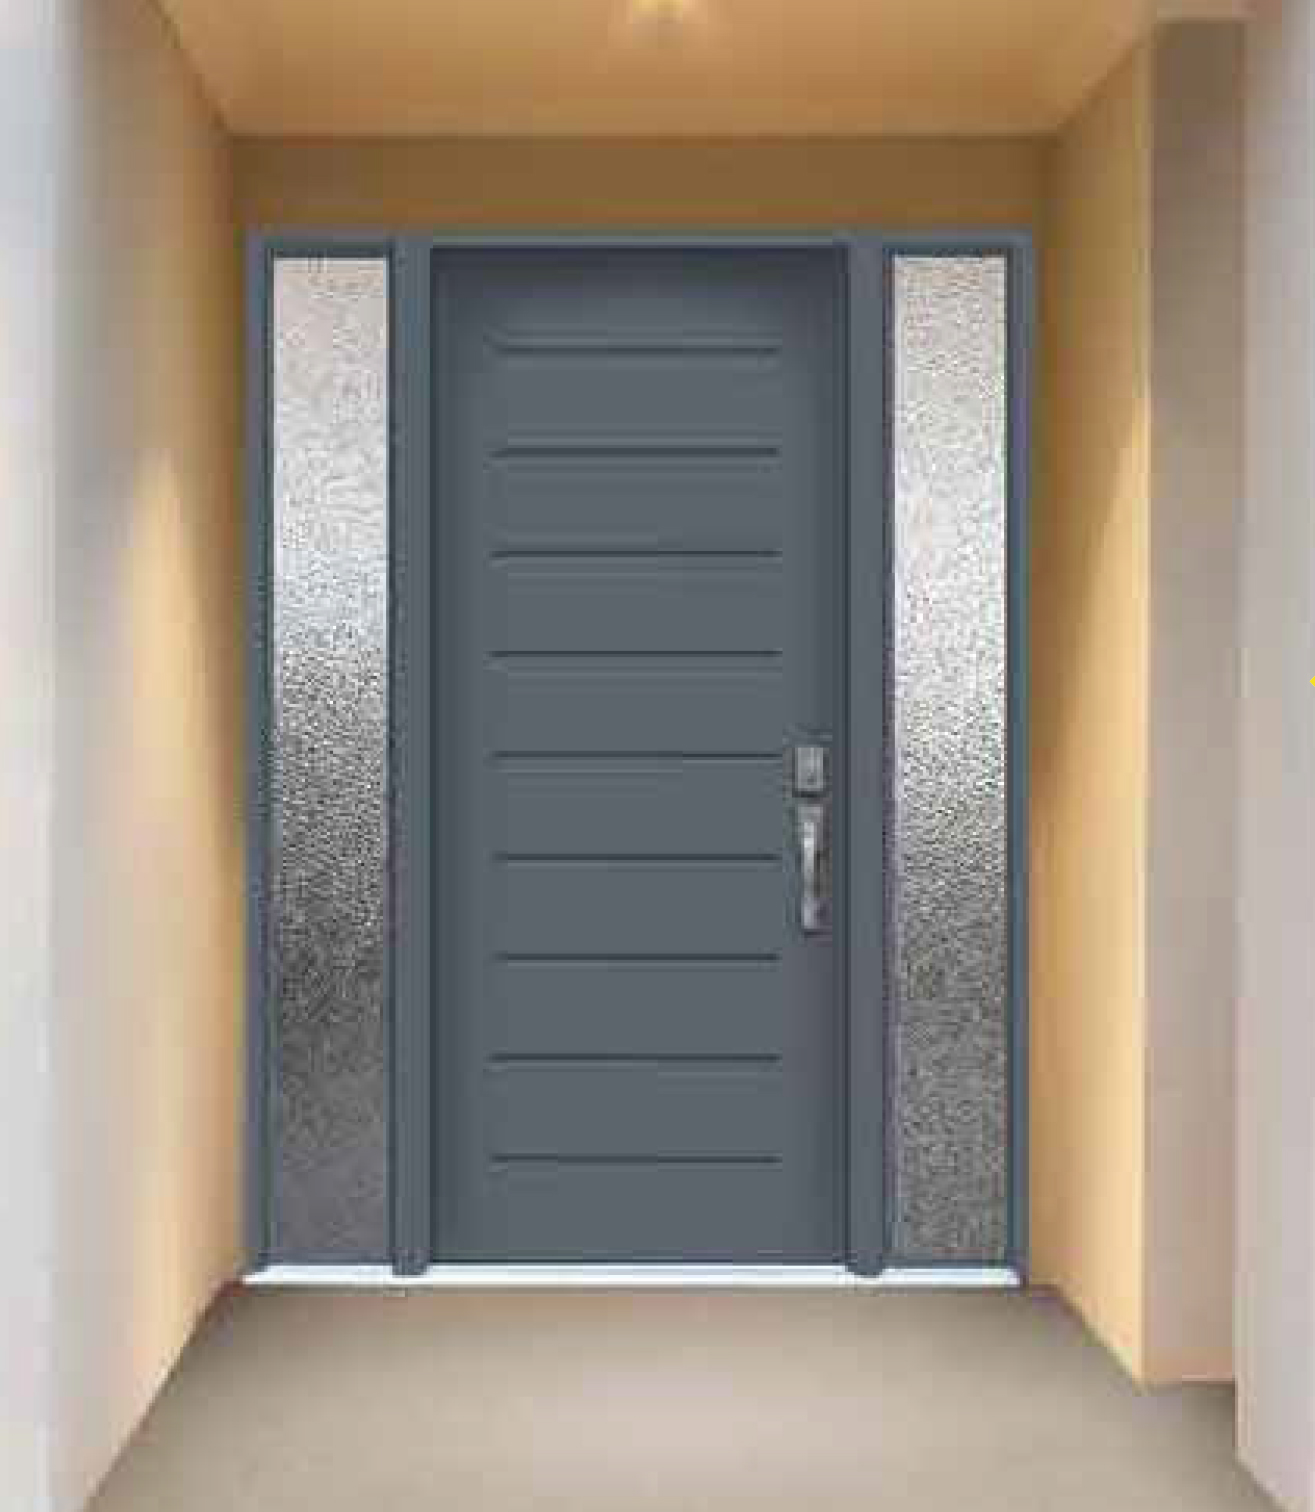 Camden Door Controls is the industry leading manufacturer